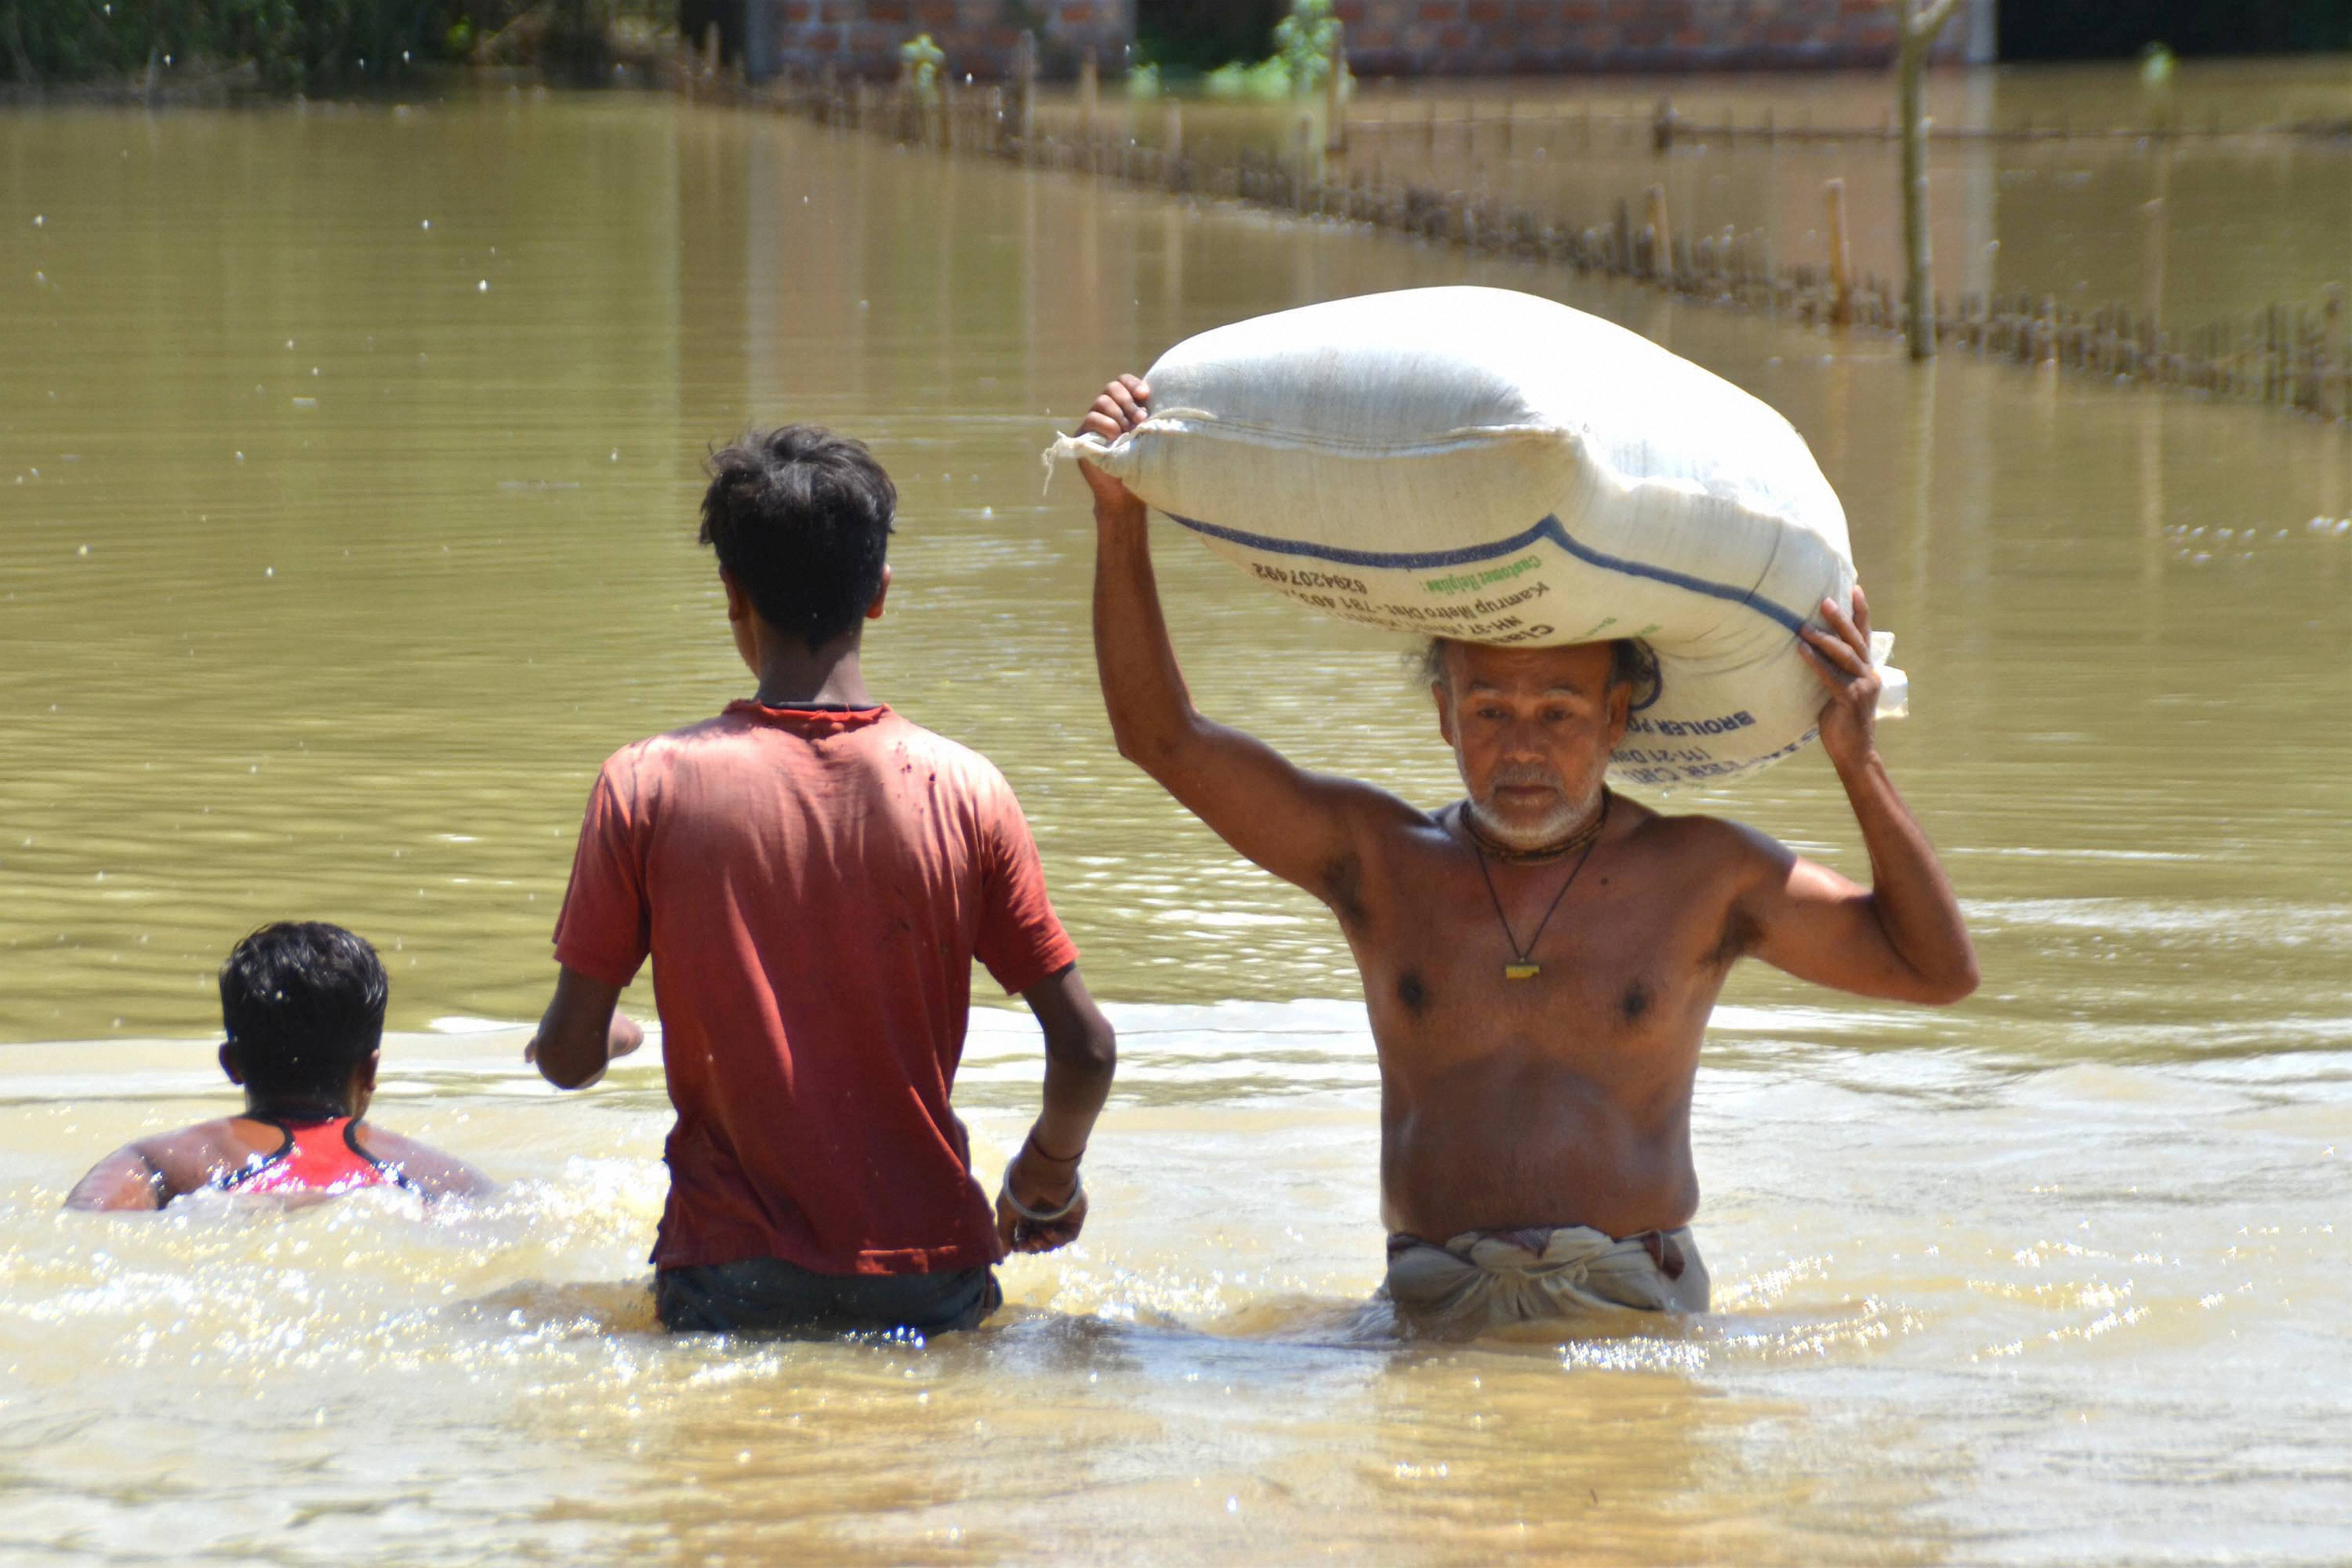 An elderly man, carrying a sack of grain on his head, wades through floodwater to reach a safer place at Tetelisara village in Nagaon district of Assam on Friday, May 29, 2020.